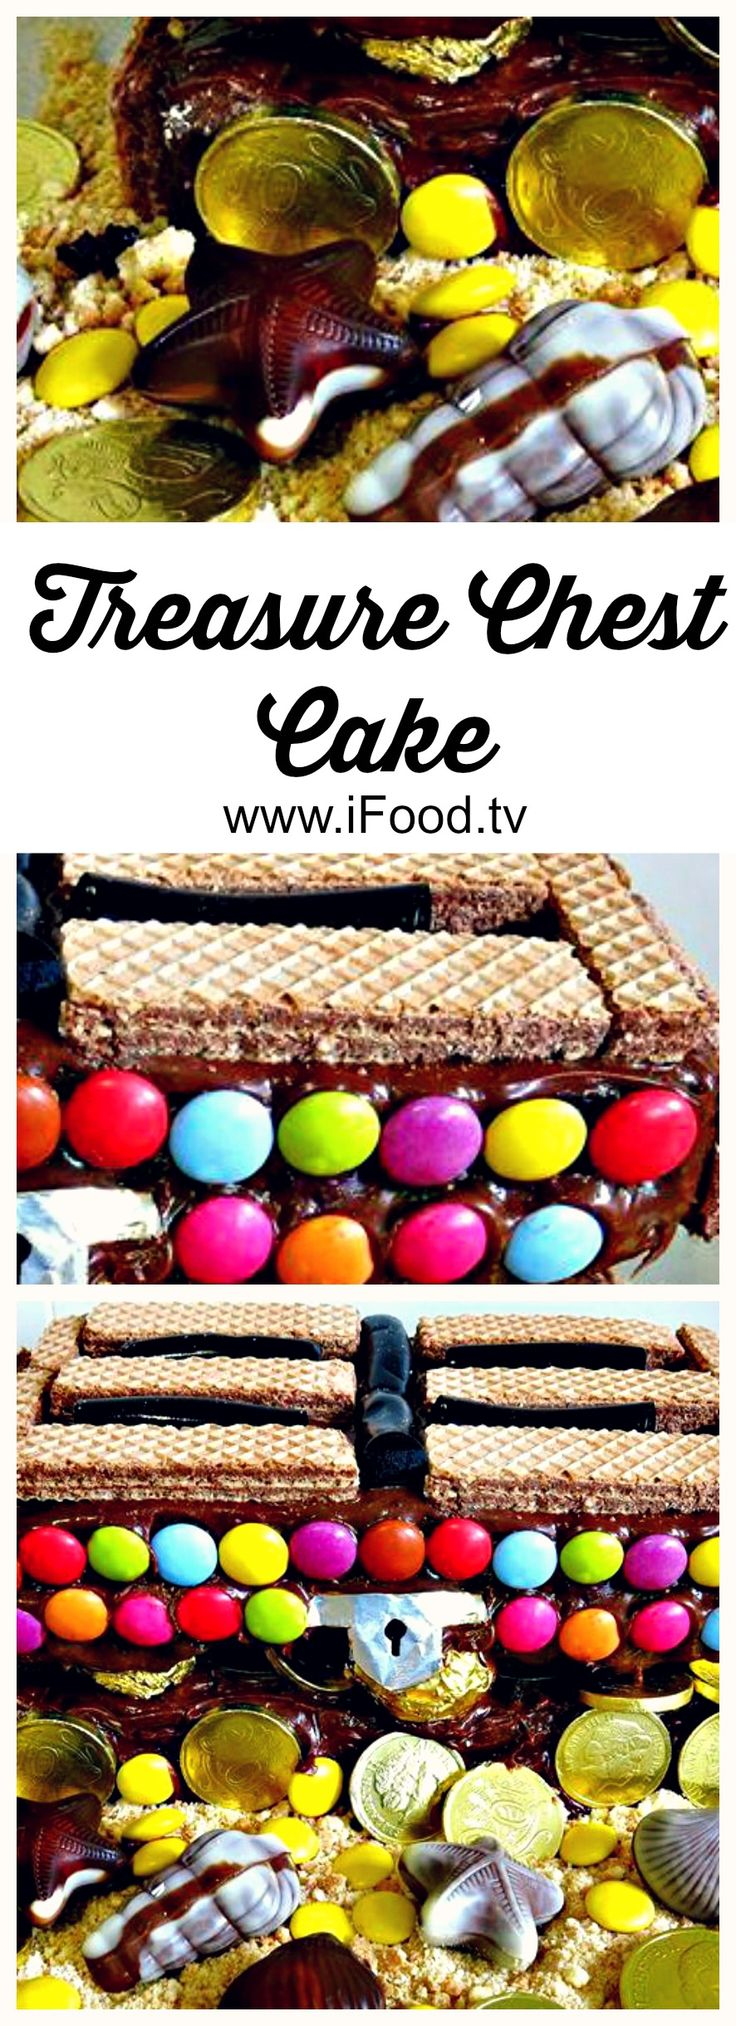 A lil' something for the kids - #Treasure Chest #Cake!